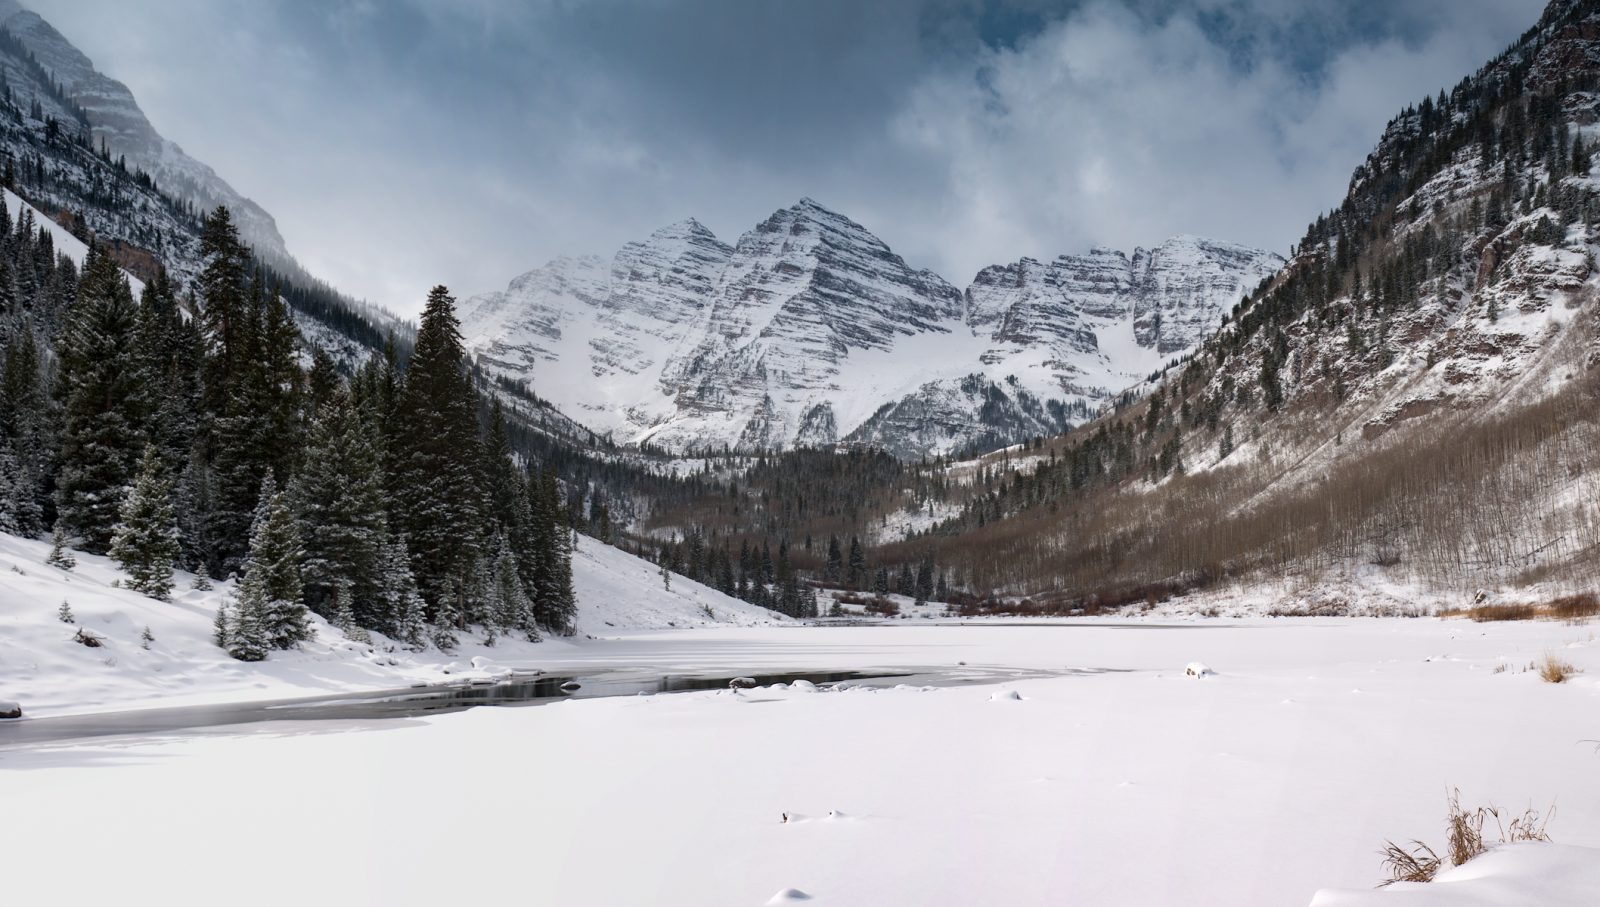 Early Winter at the Maroon Bells